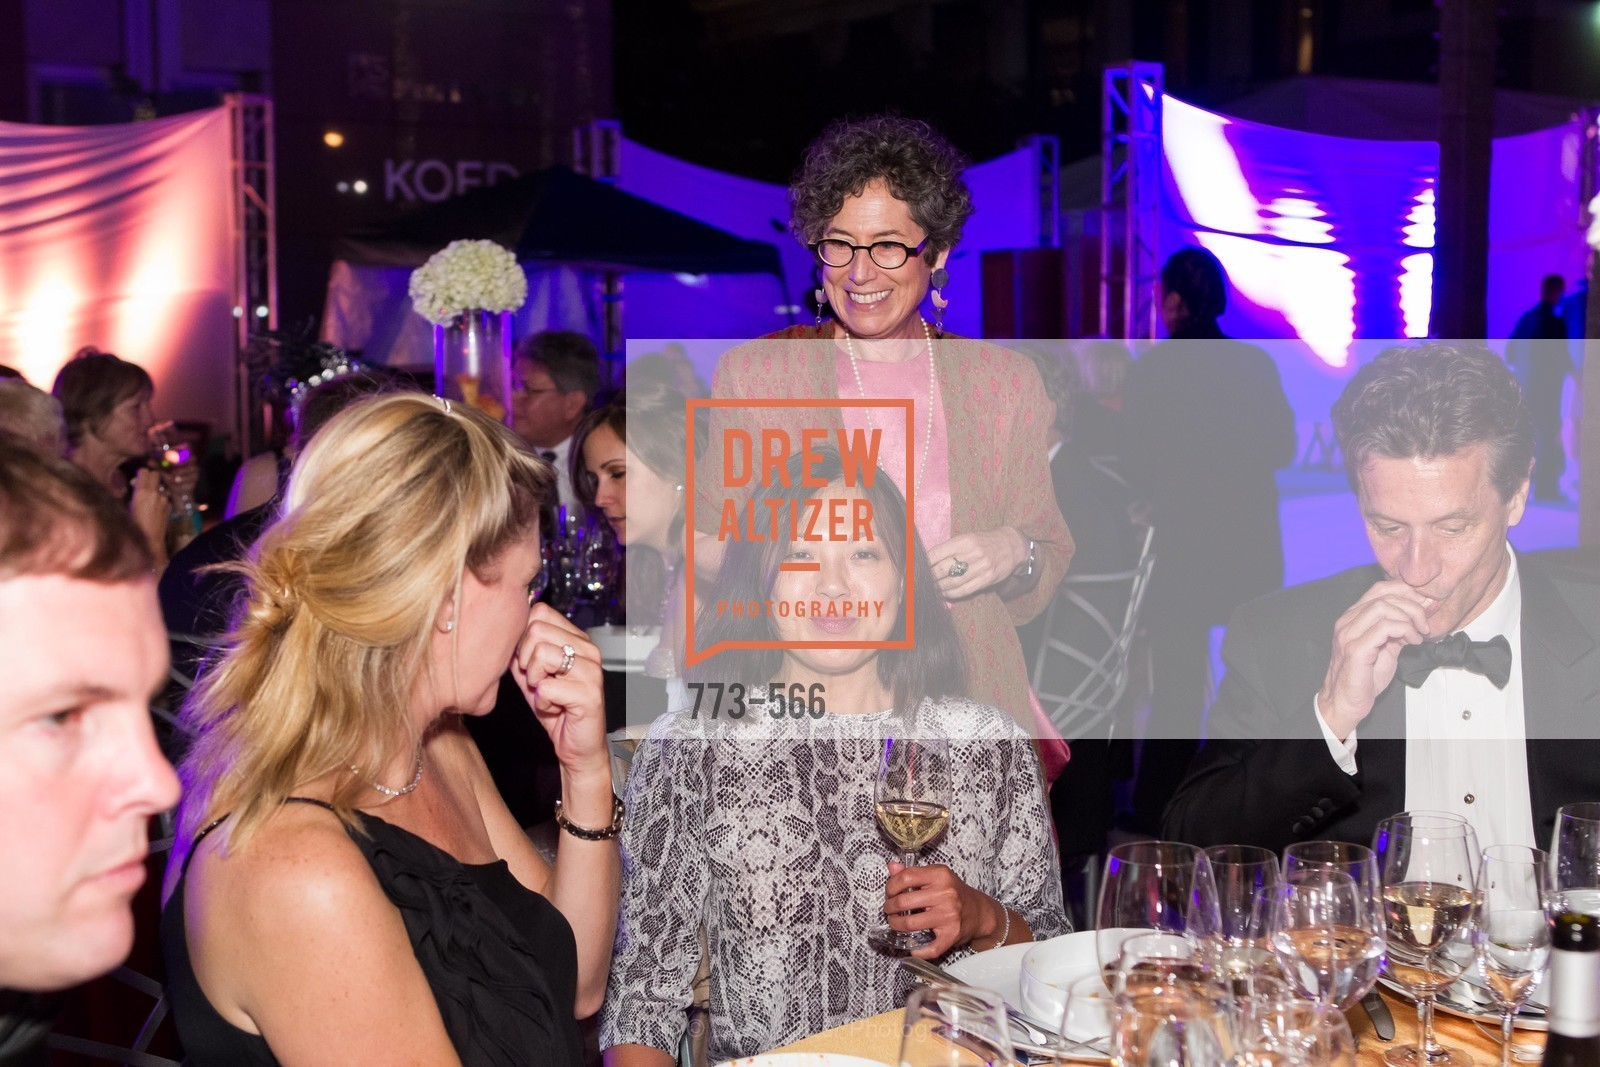 Susan Krane, Elisa Lee, SAN JOSE MUSEUM OF ART'S Spectrum Gala - 45th Anniversary, US, September 13th, 2014,Drew Altizer, Drew Altizer Photography, full-service agency, private events, San Francisco photographer, photographer california